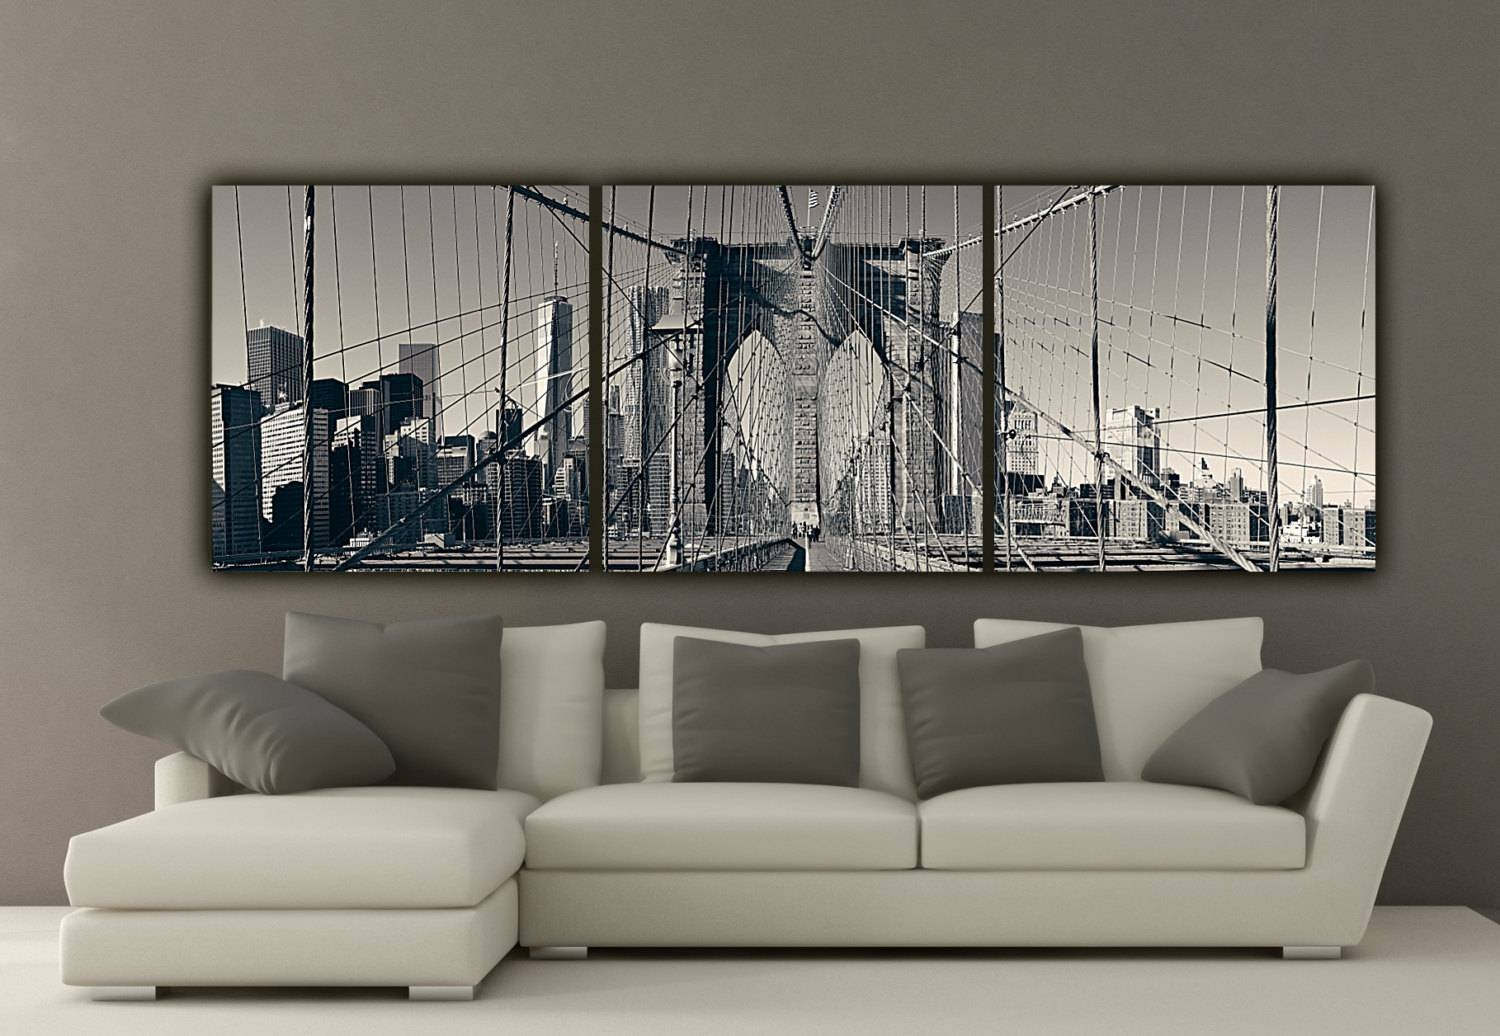 New York Brooklyn Bridge Canvas Wall Art Black And White New With Most Current Large Black And White Wall Art (Gallery 1 of 20)